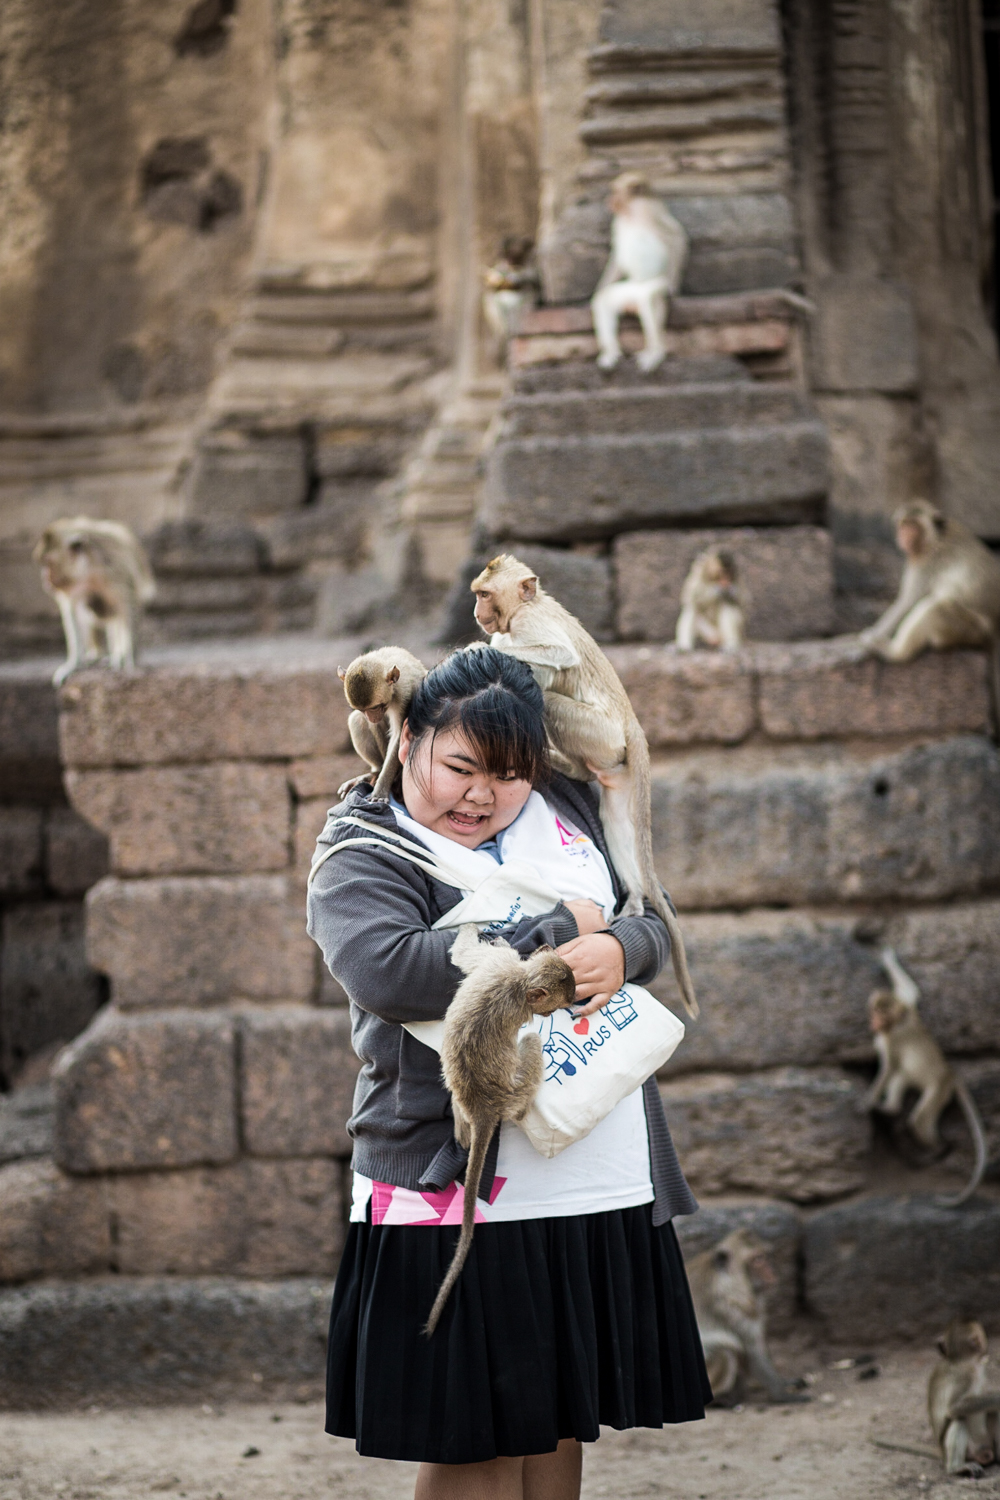 This is what happens if you feed the monkeys.